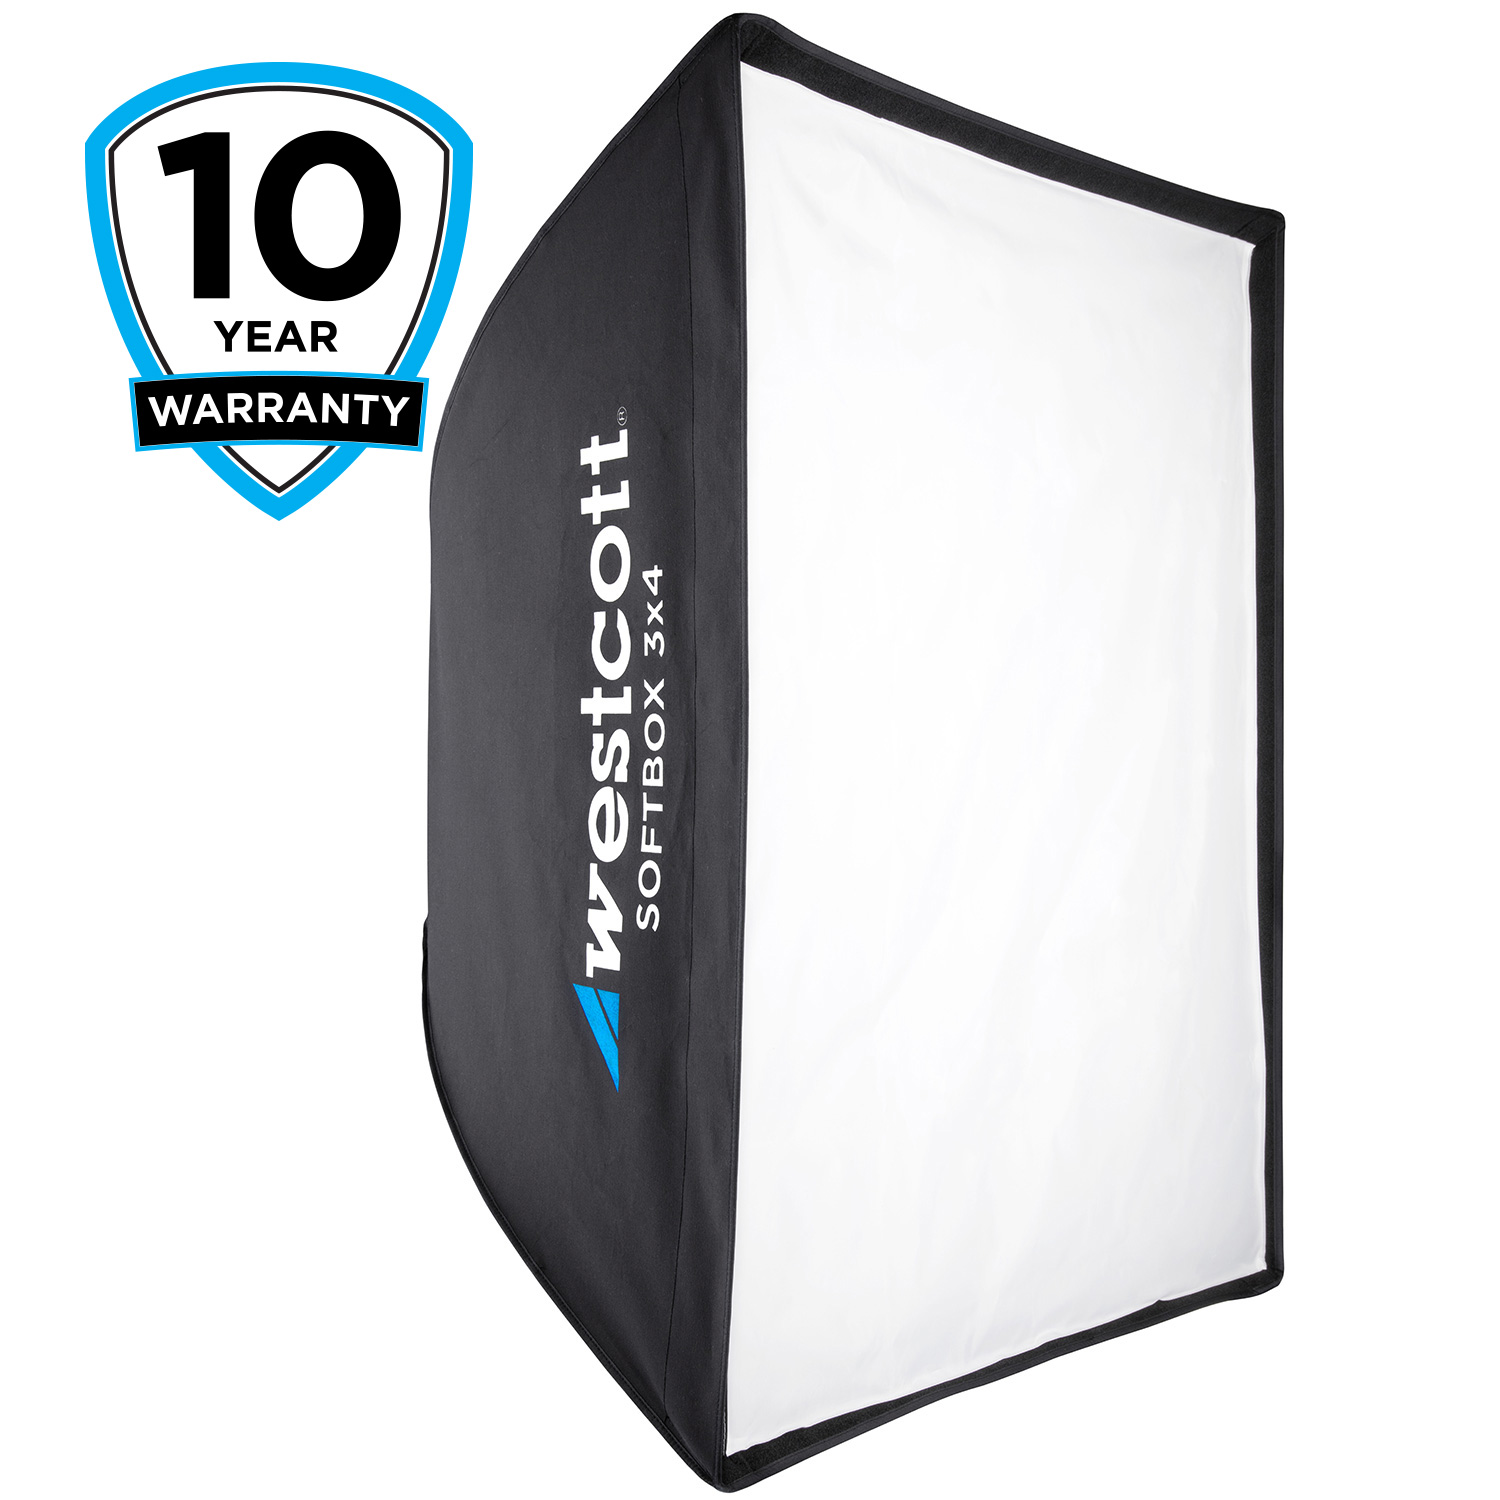 Softbox 3x4 (Silver Interior)